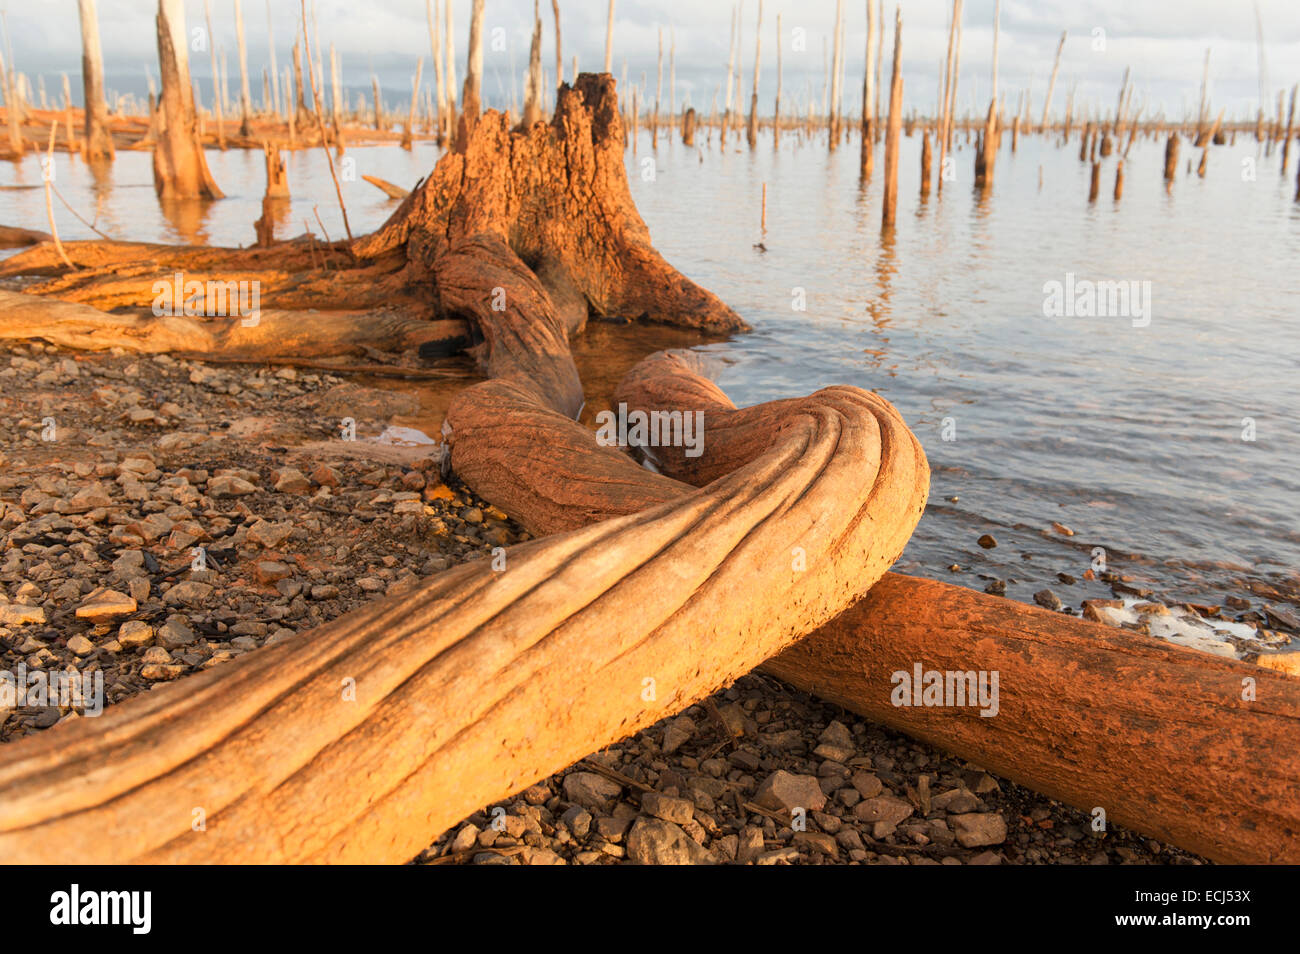 Trunks and roots as last remains of the submerged rainforest in Lake Brokopondo, Suriname - Stock Image